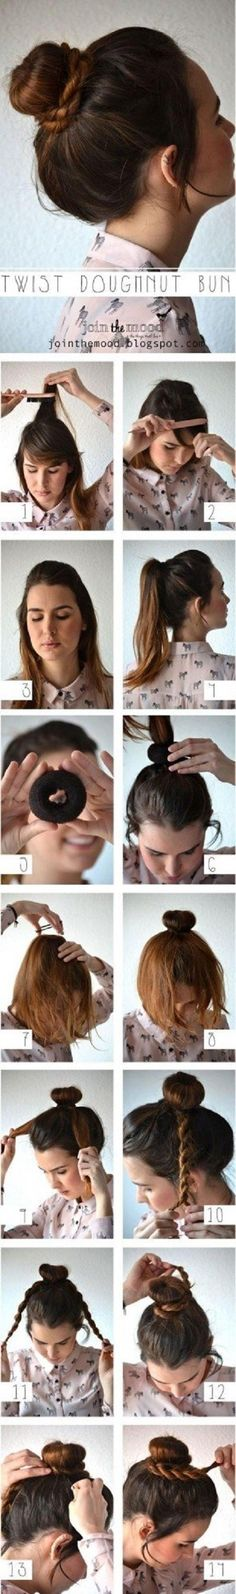 Twist Dougmnut Bun - Hairstyle Tutorial